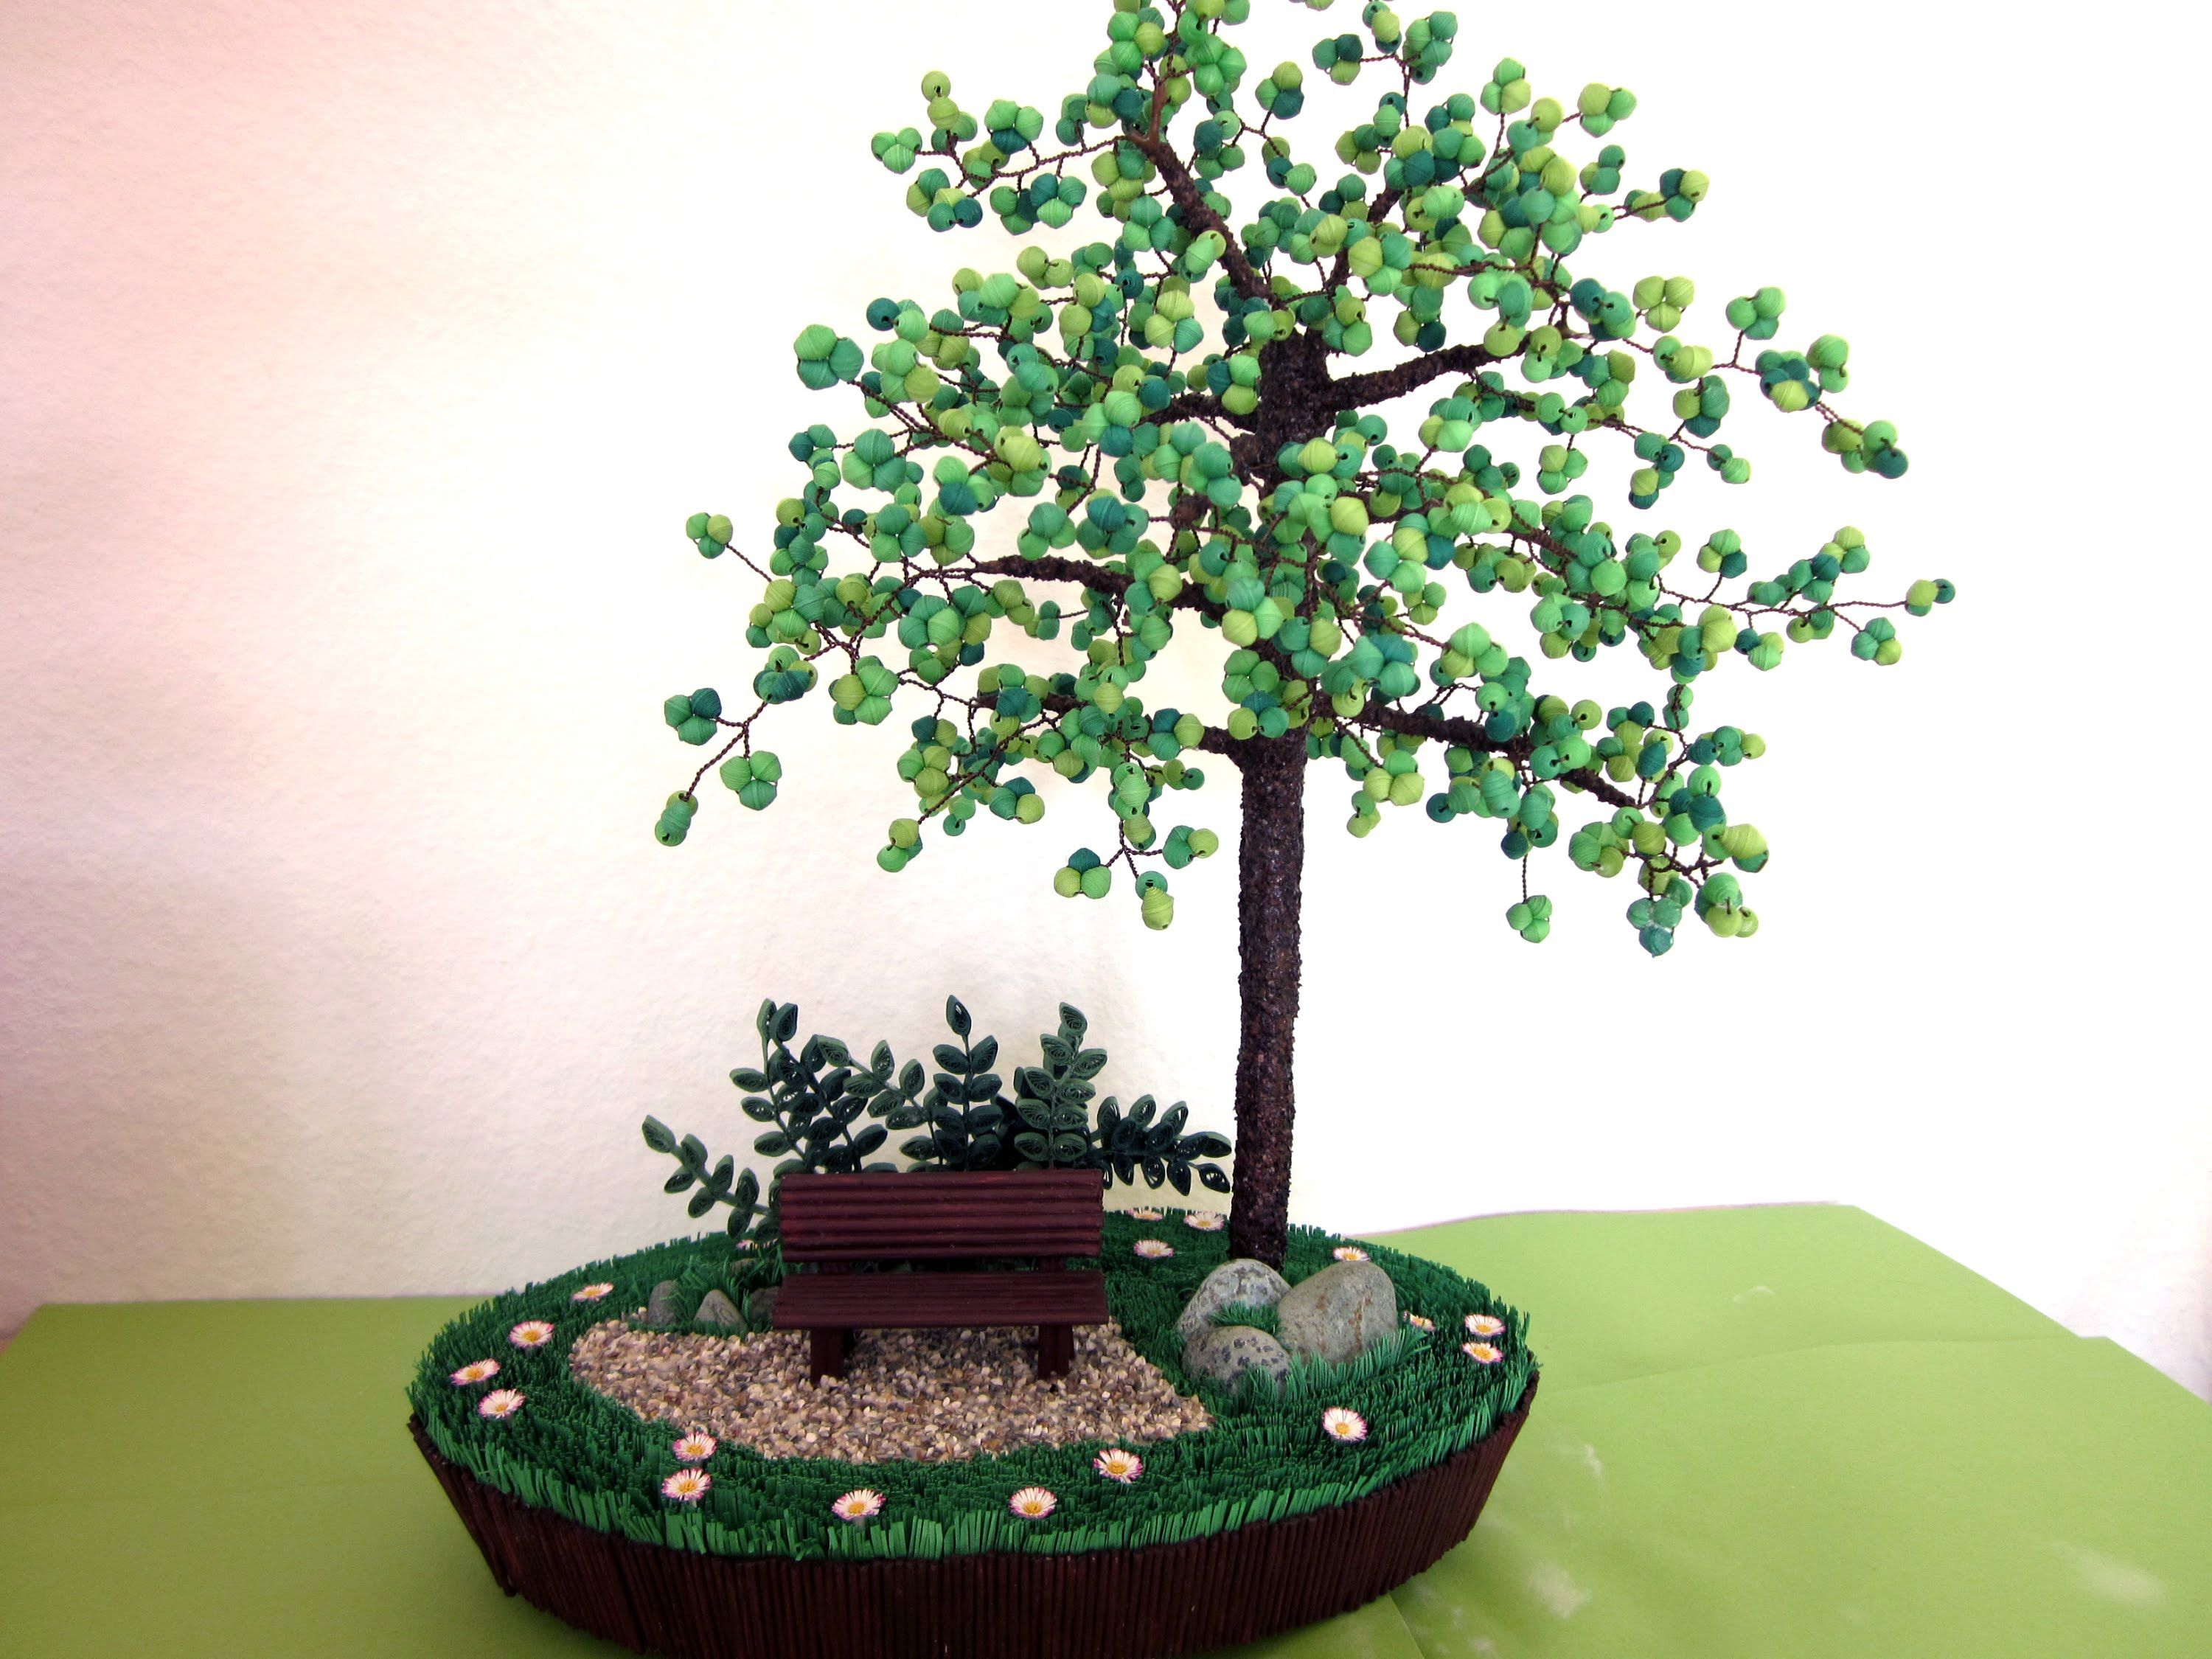 Astonishing Had To Share Bridgit S Quilling Perlen Baum Nr 01 Quilling Paper Beard - Baum Falten